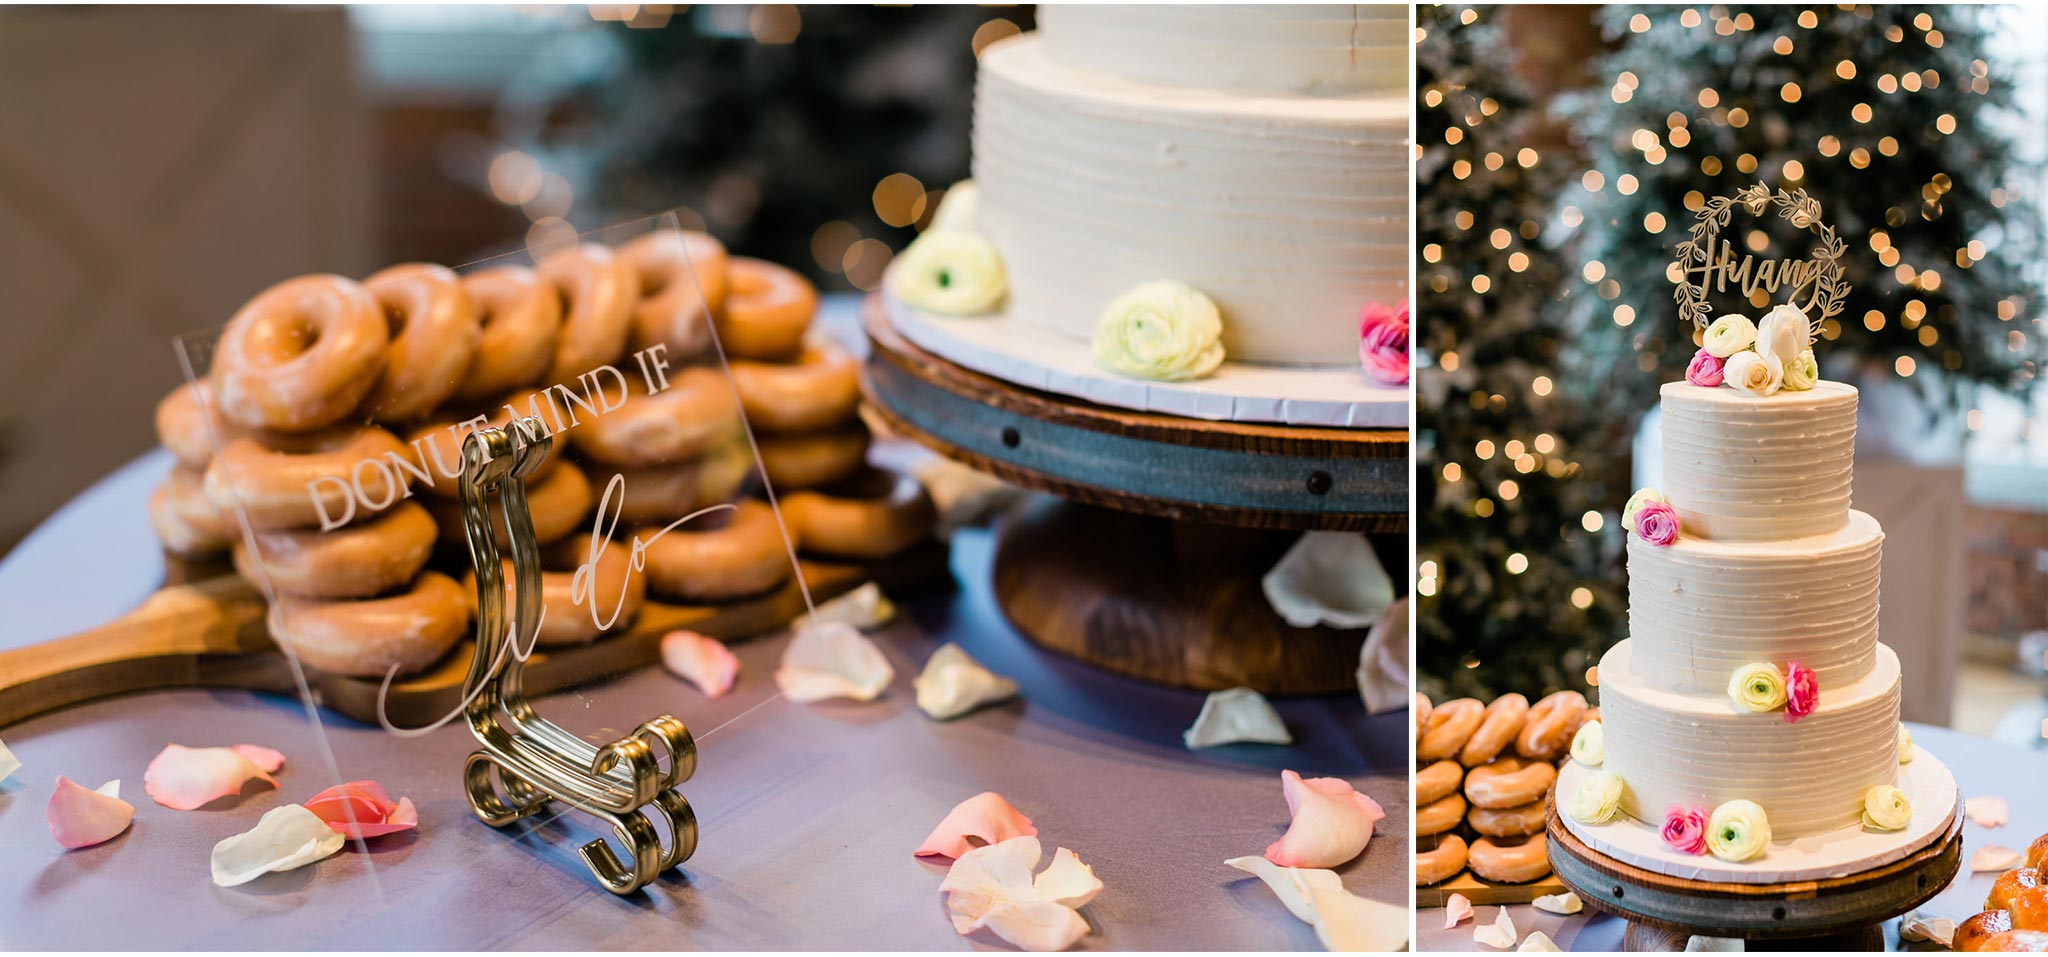 Wedding cake and donuts | Durham Wedding Photographer | The Cotton Room | By G. Lin Photography